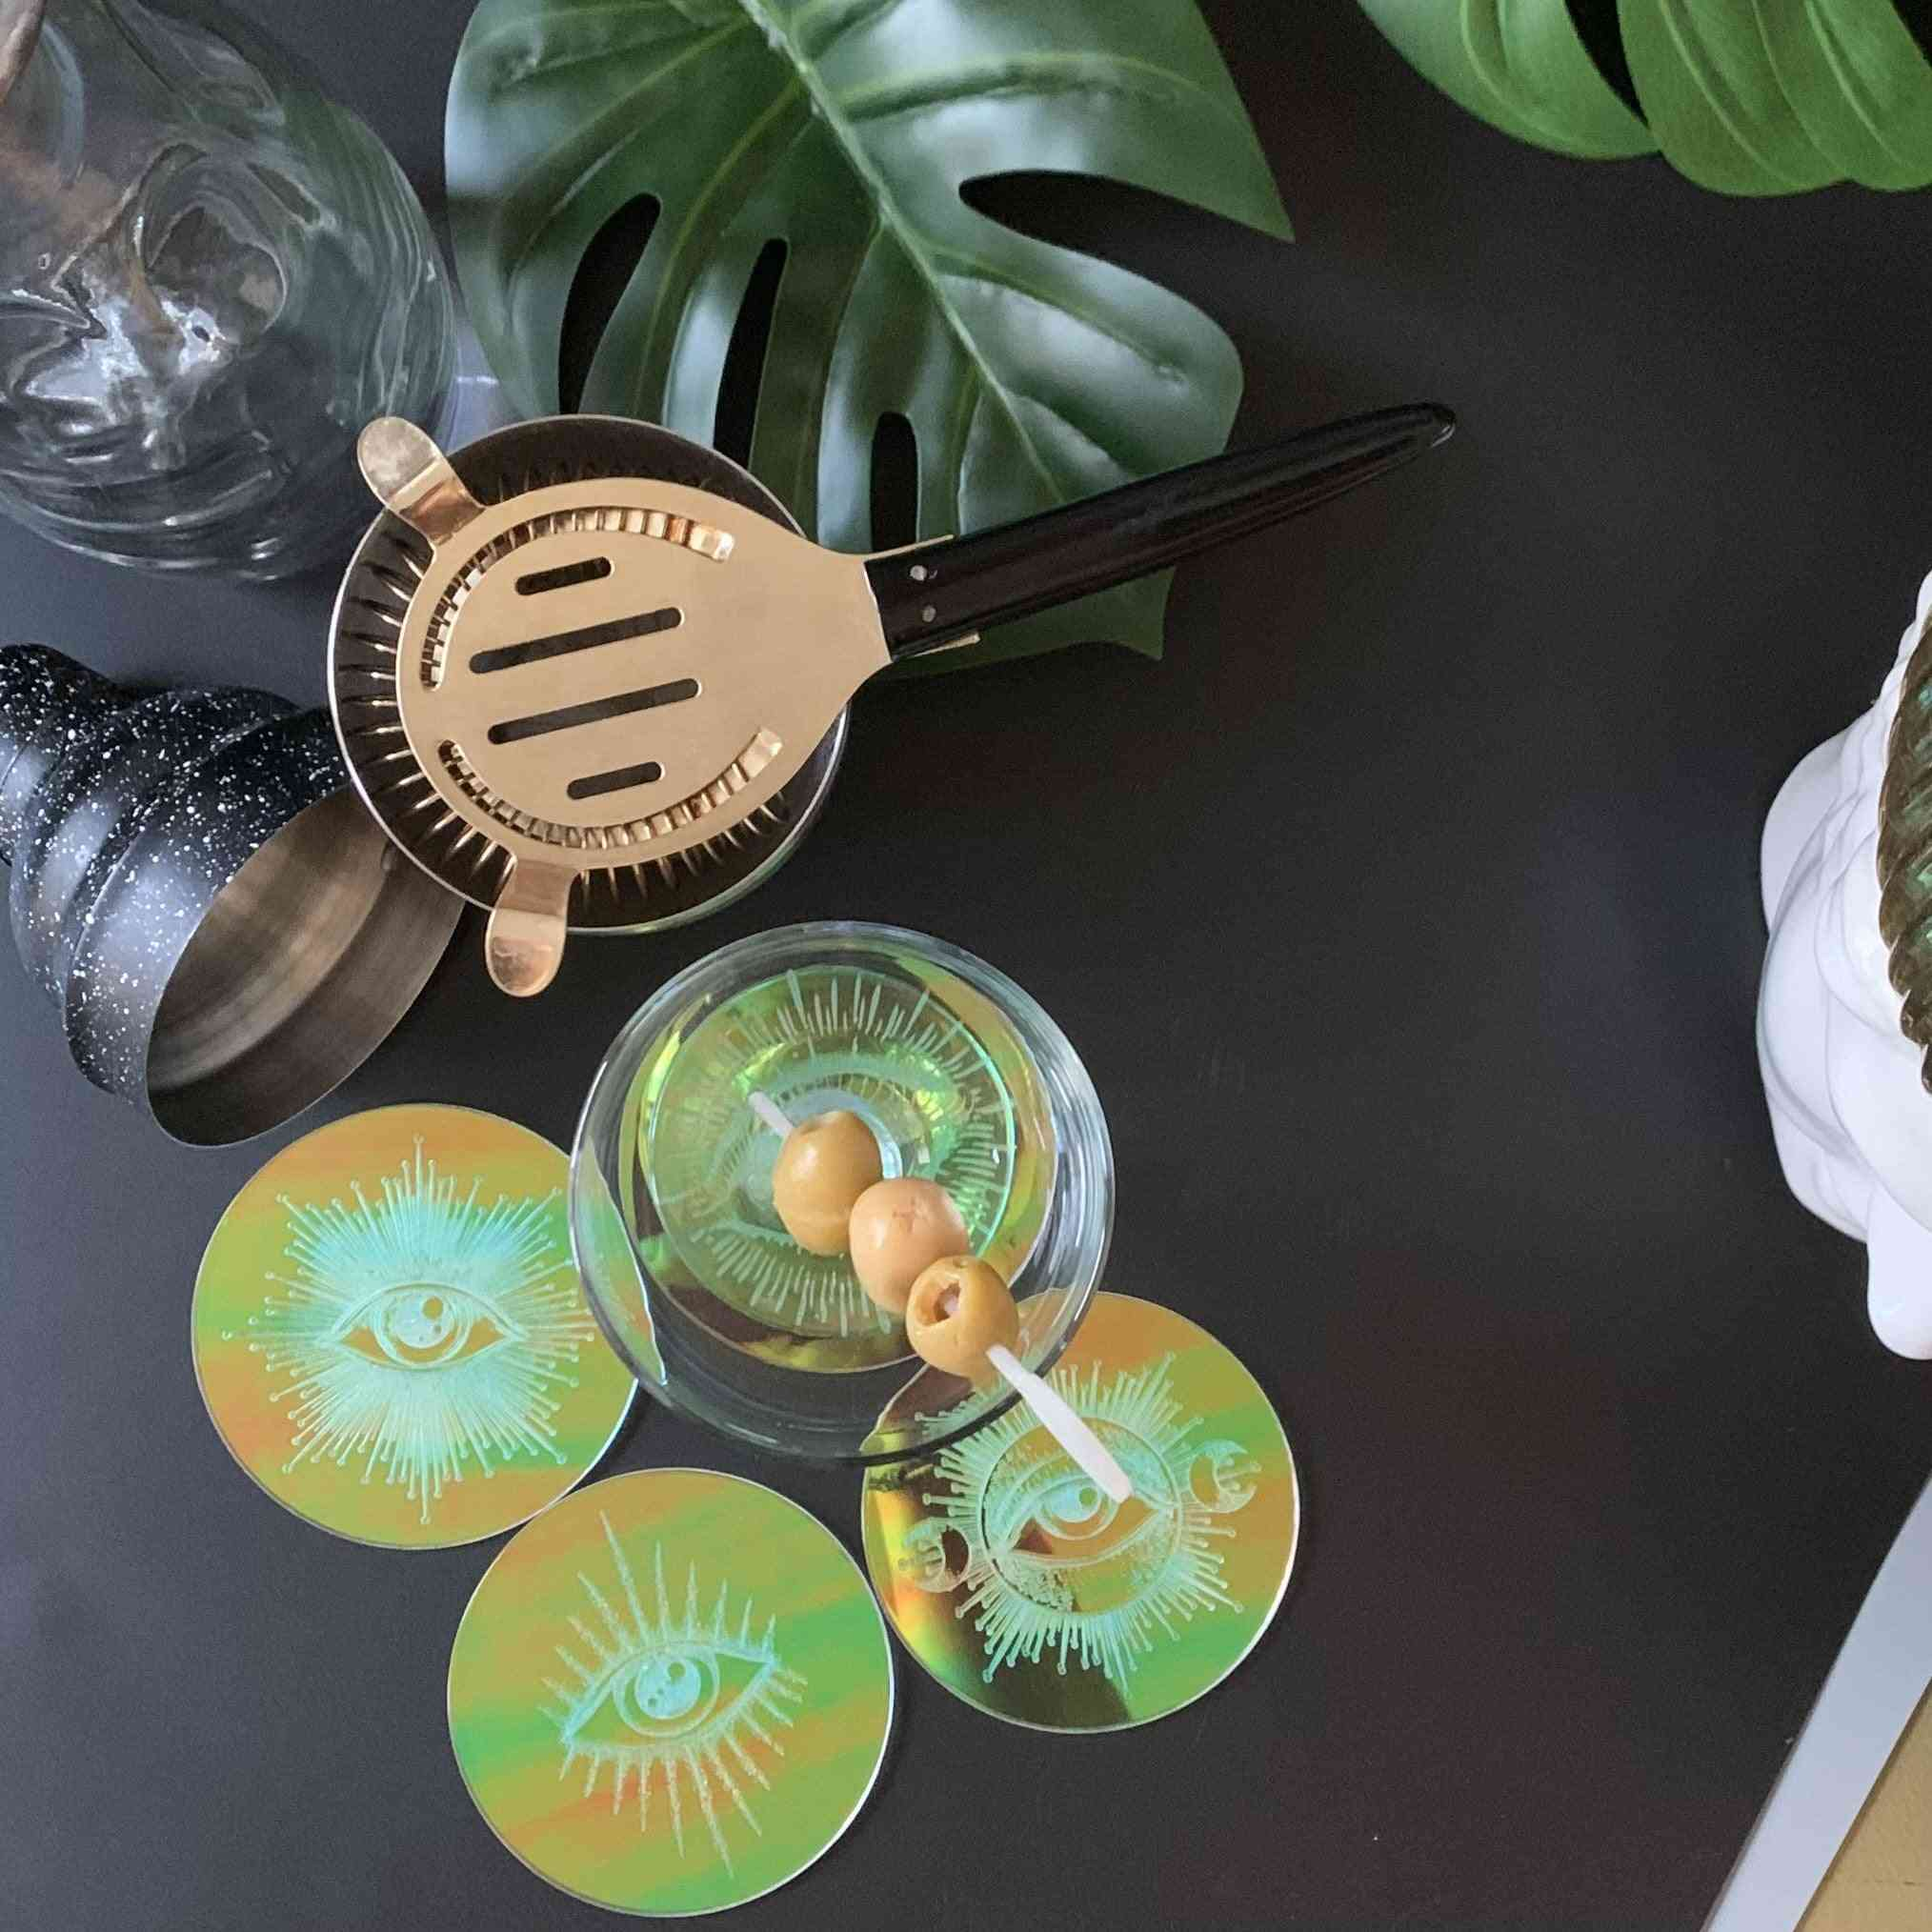 The All Seeing Eyes Coasters